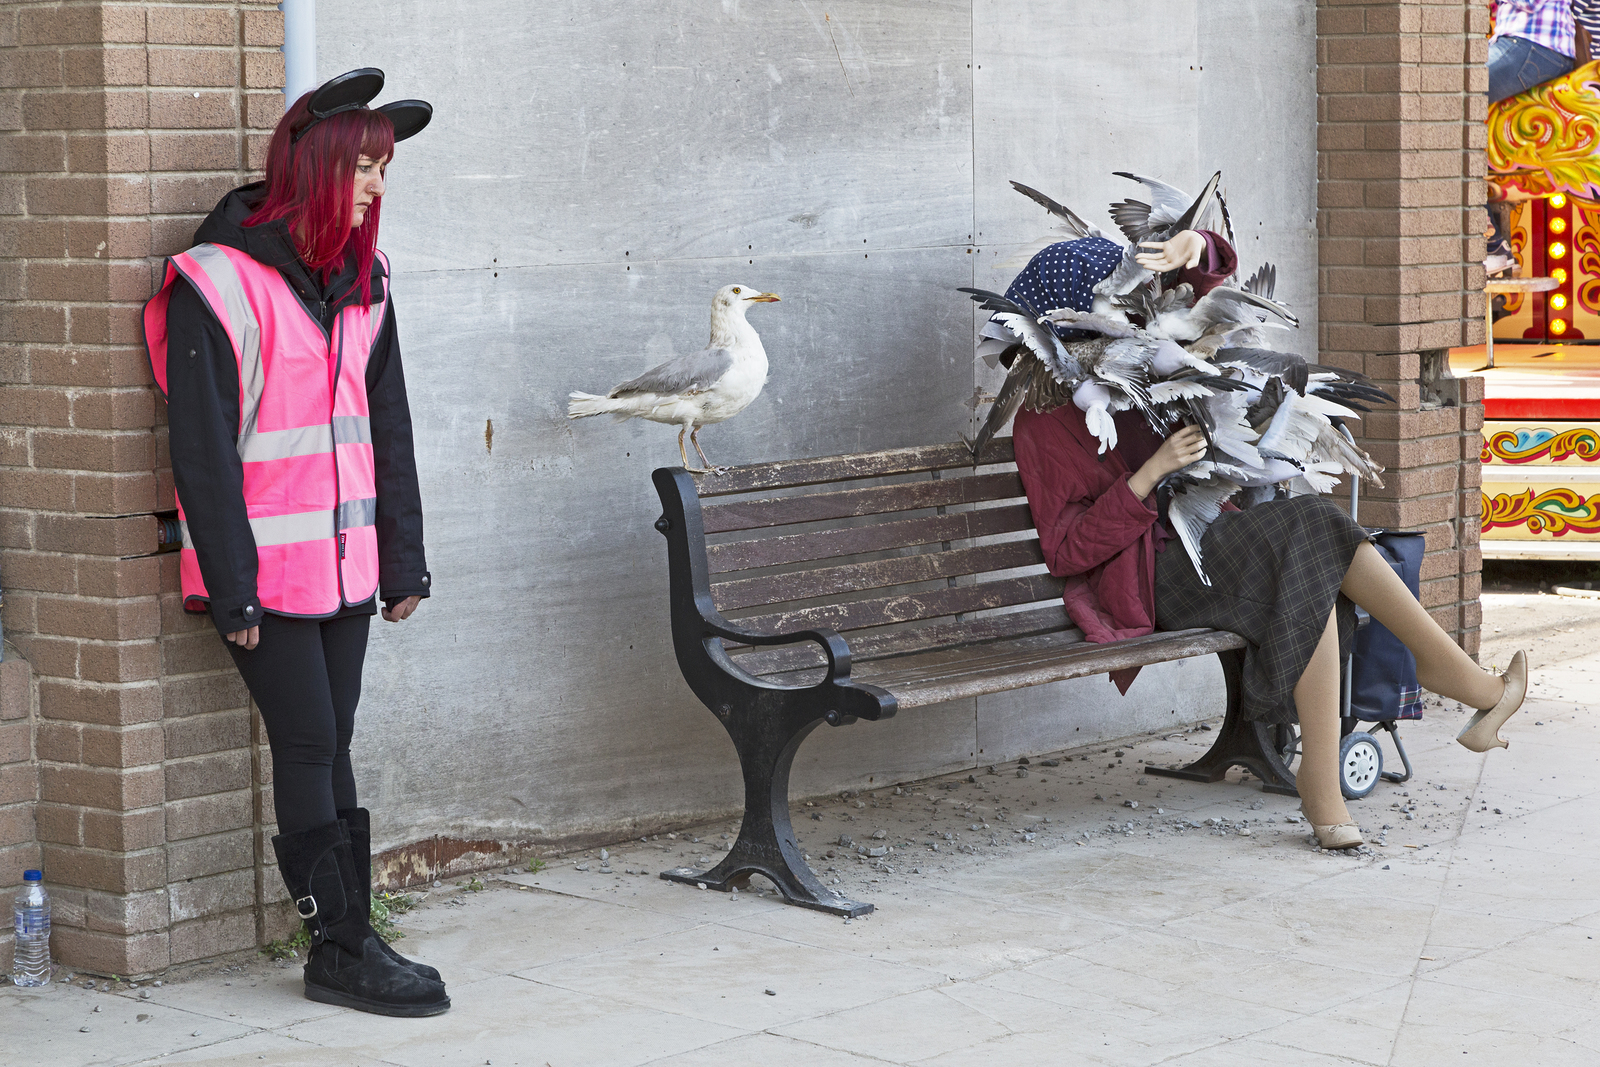 Dismaland — An Apocalyptic Bemusement Park by Banksy